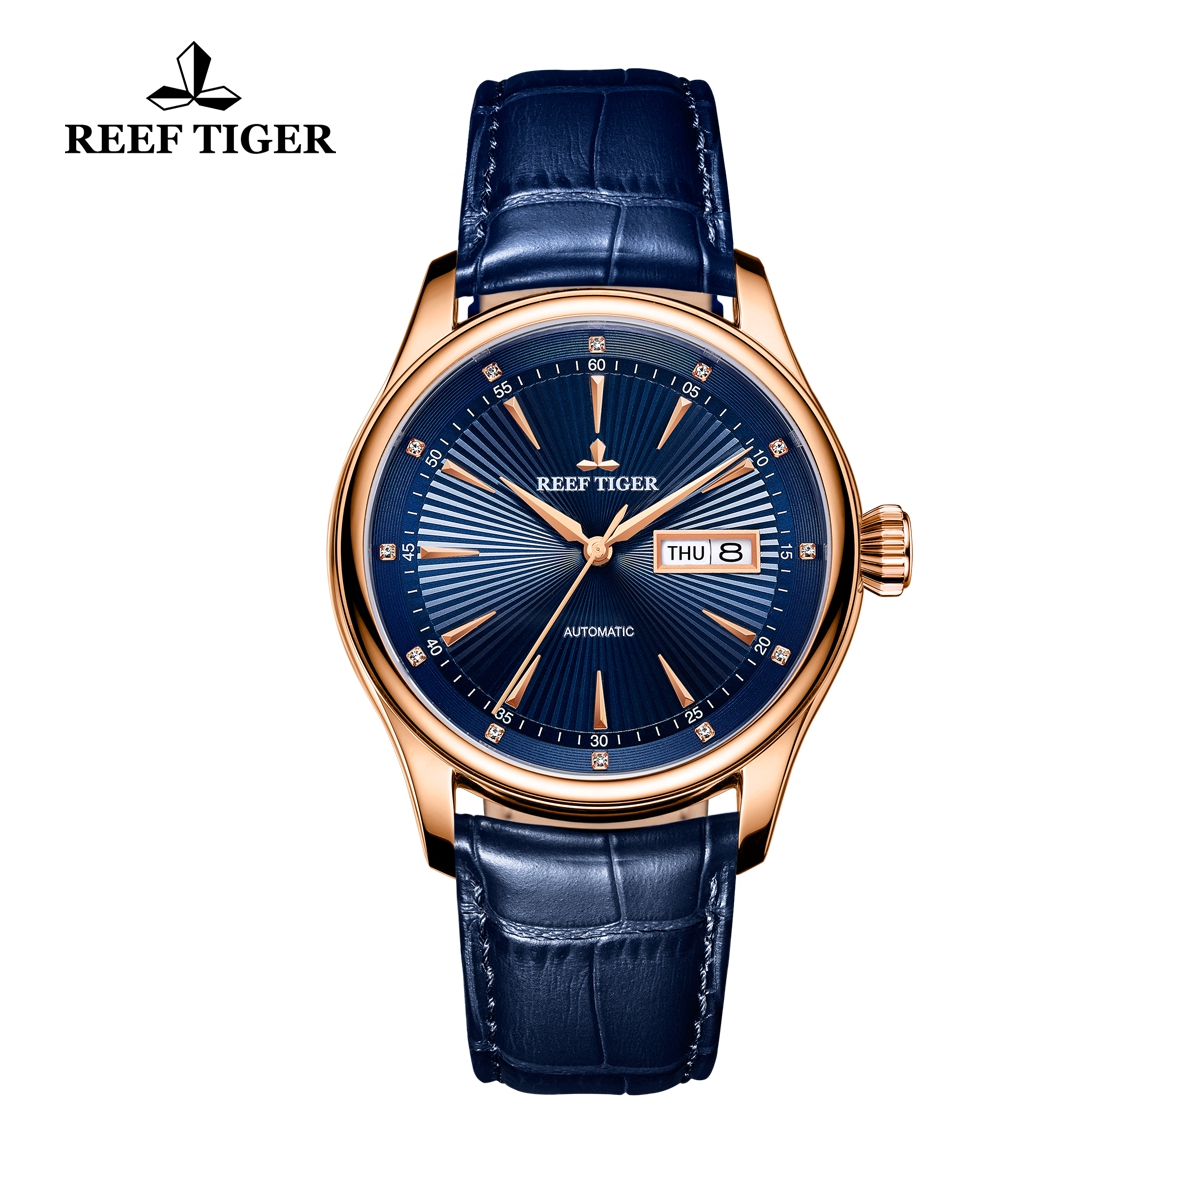 Reef Tiger Heritage II Dress Watch Automatic Blue Dial Calfskin Leather Rose Gold Case RGA8232-PLL